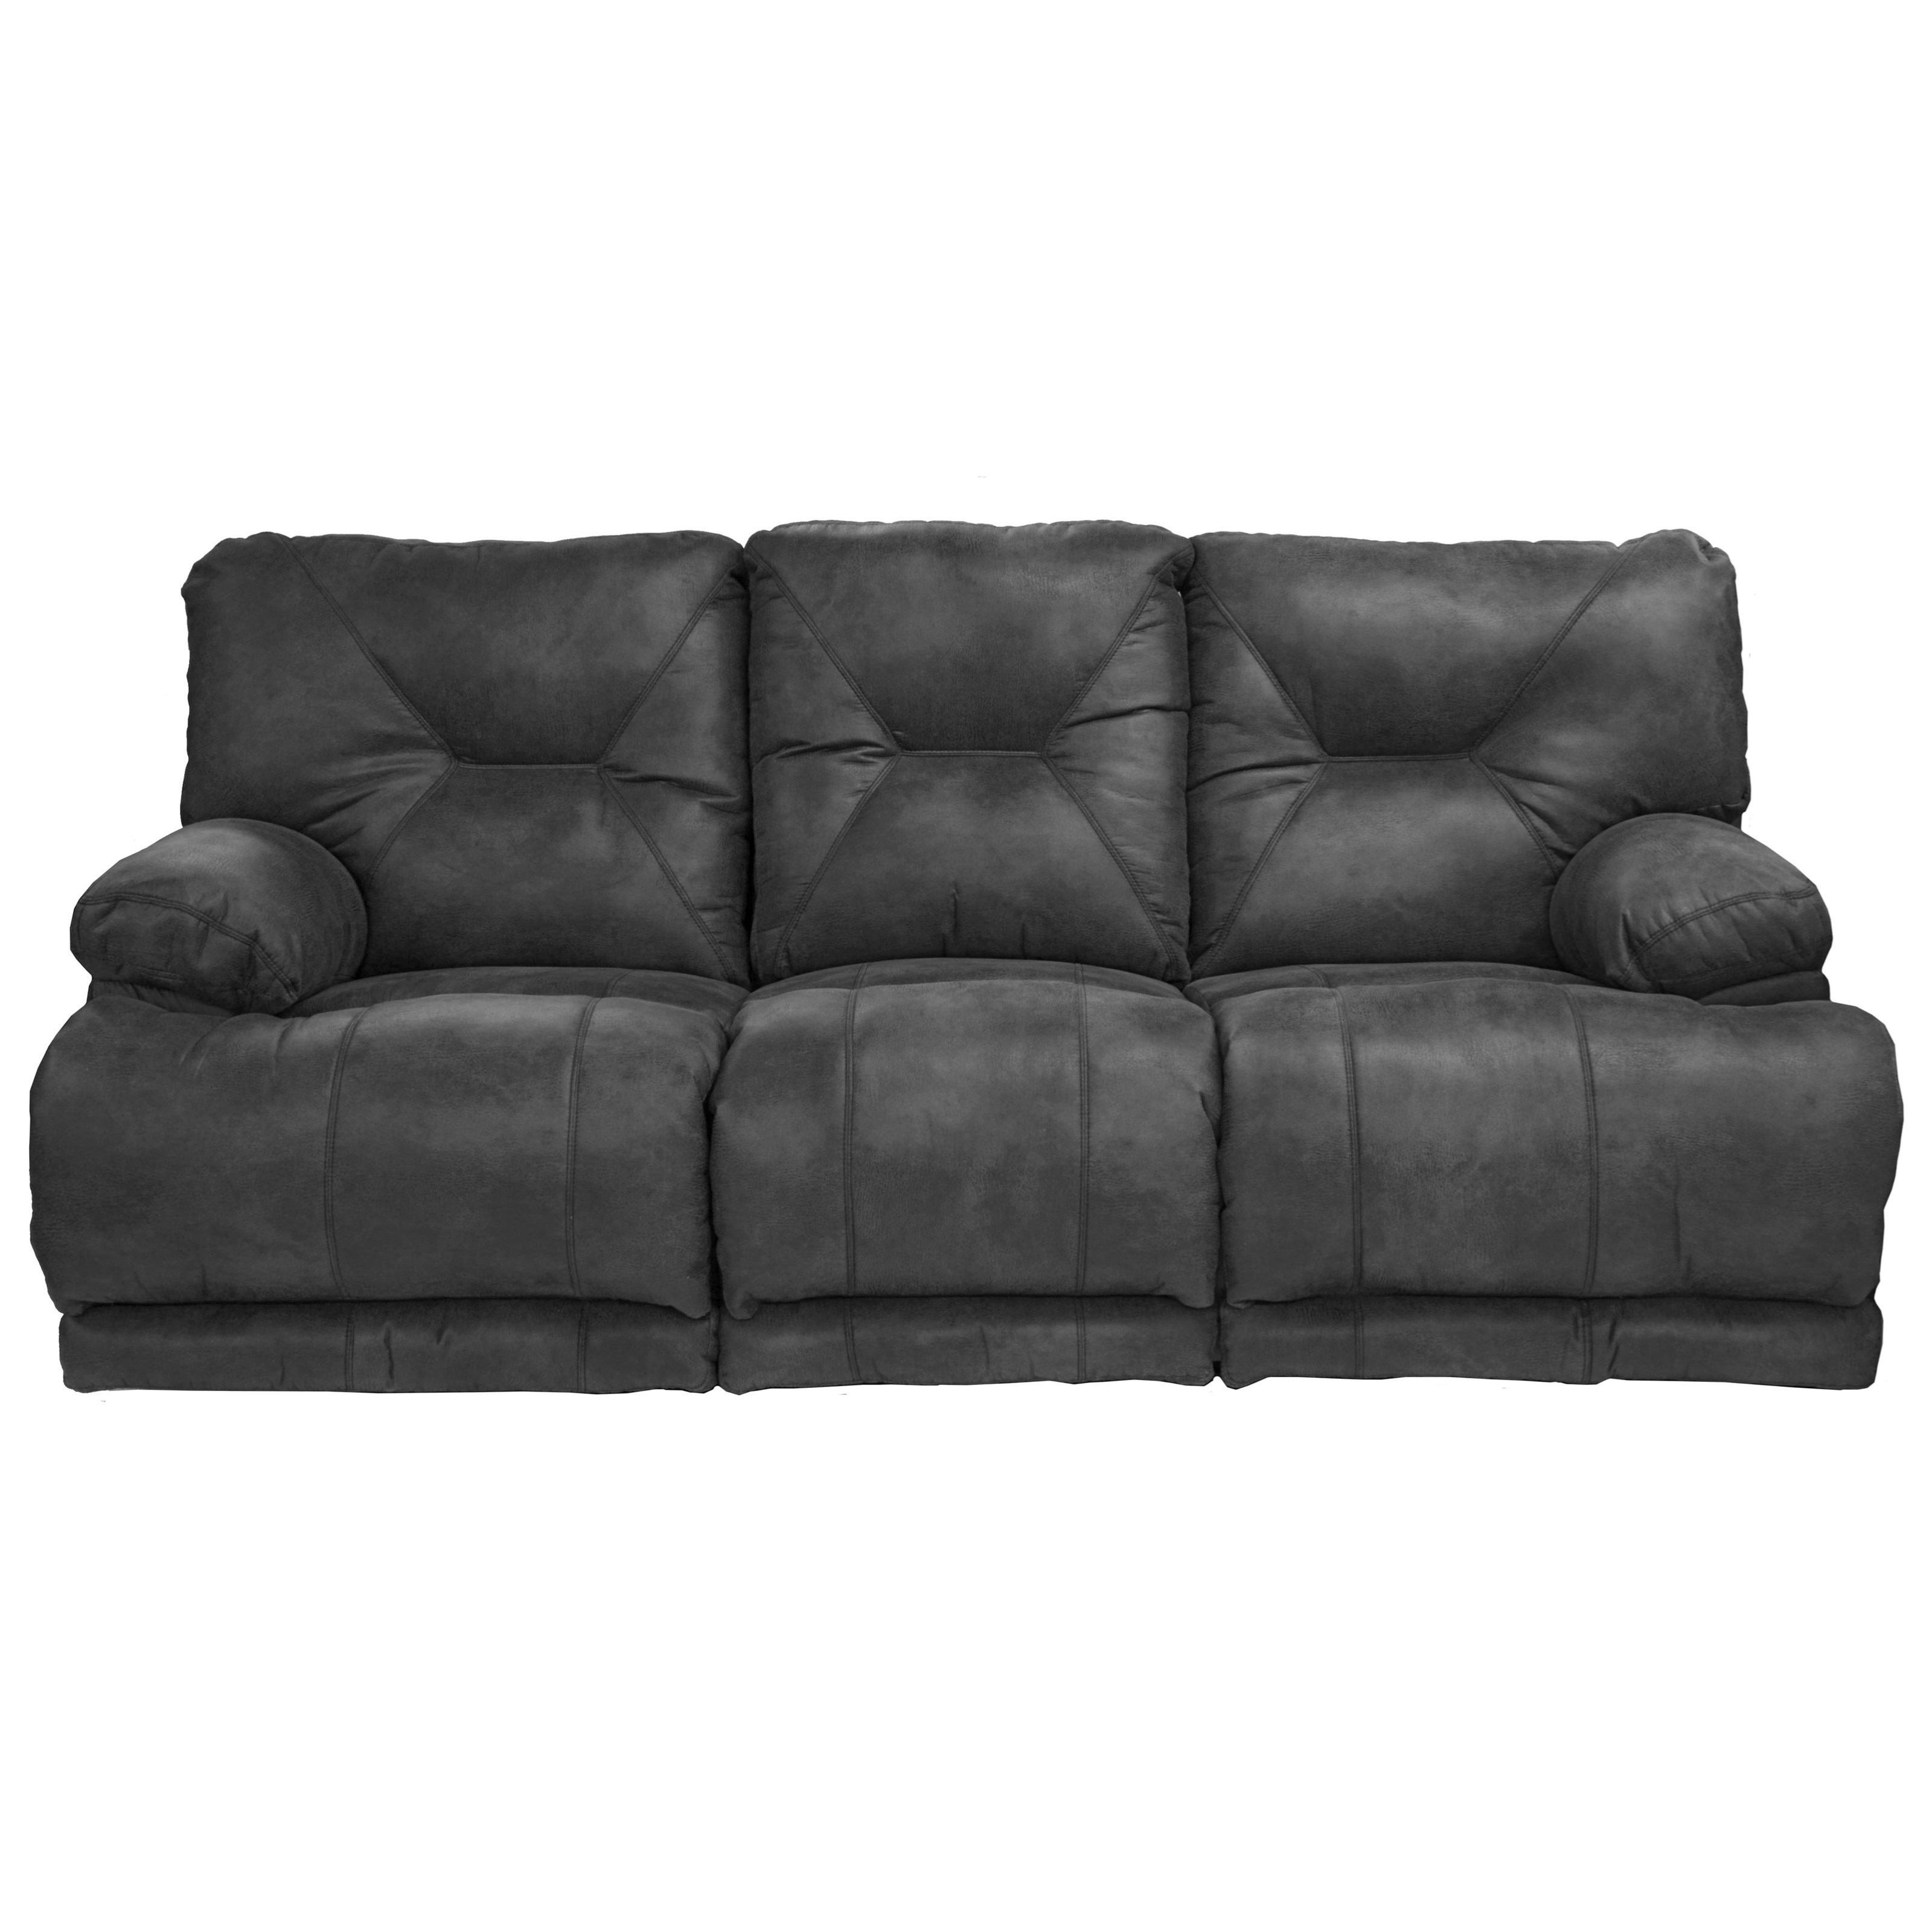 Voyager Power Lay Flat Reclining Sofa and Table by Catnapper at Bullard Furniture